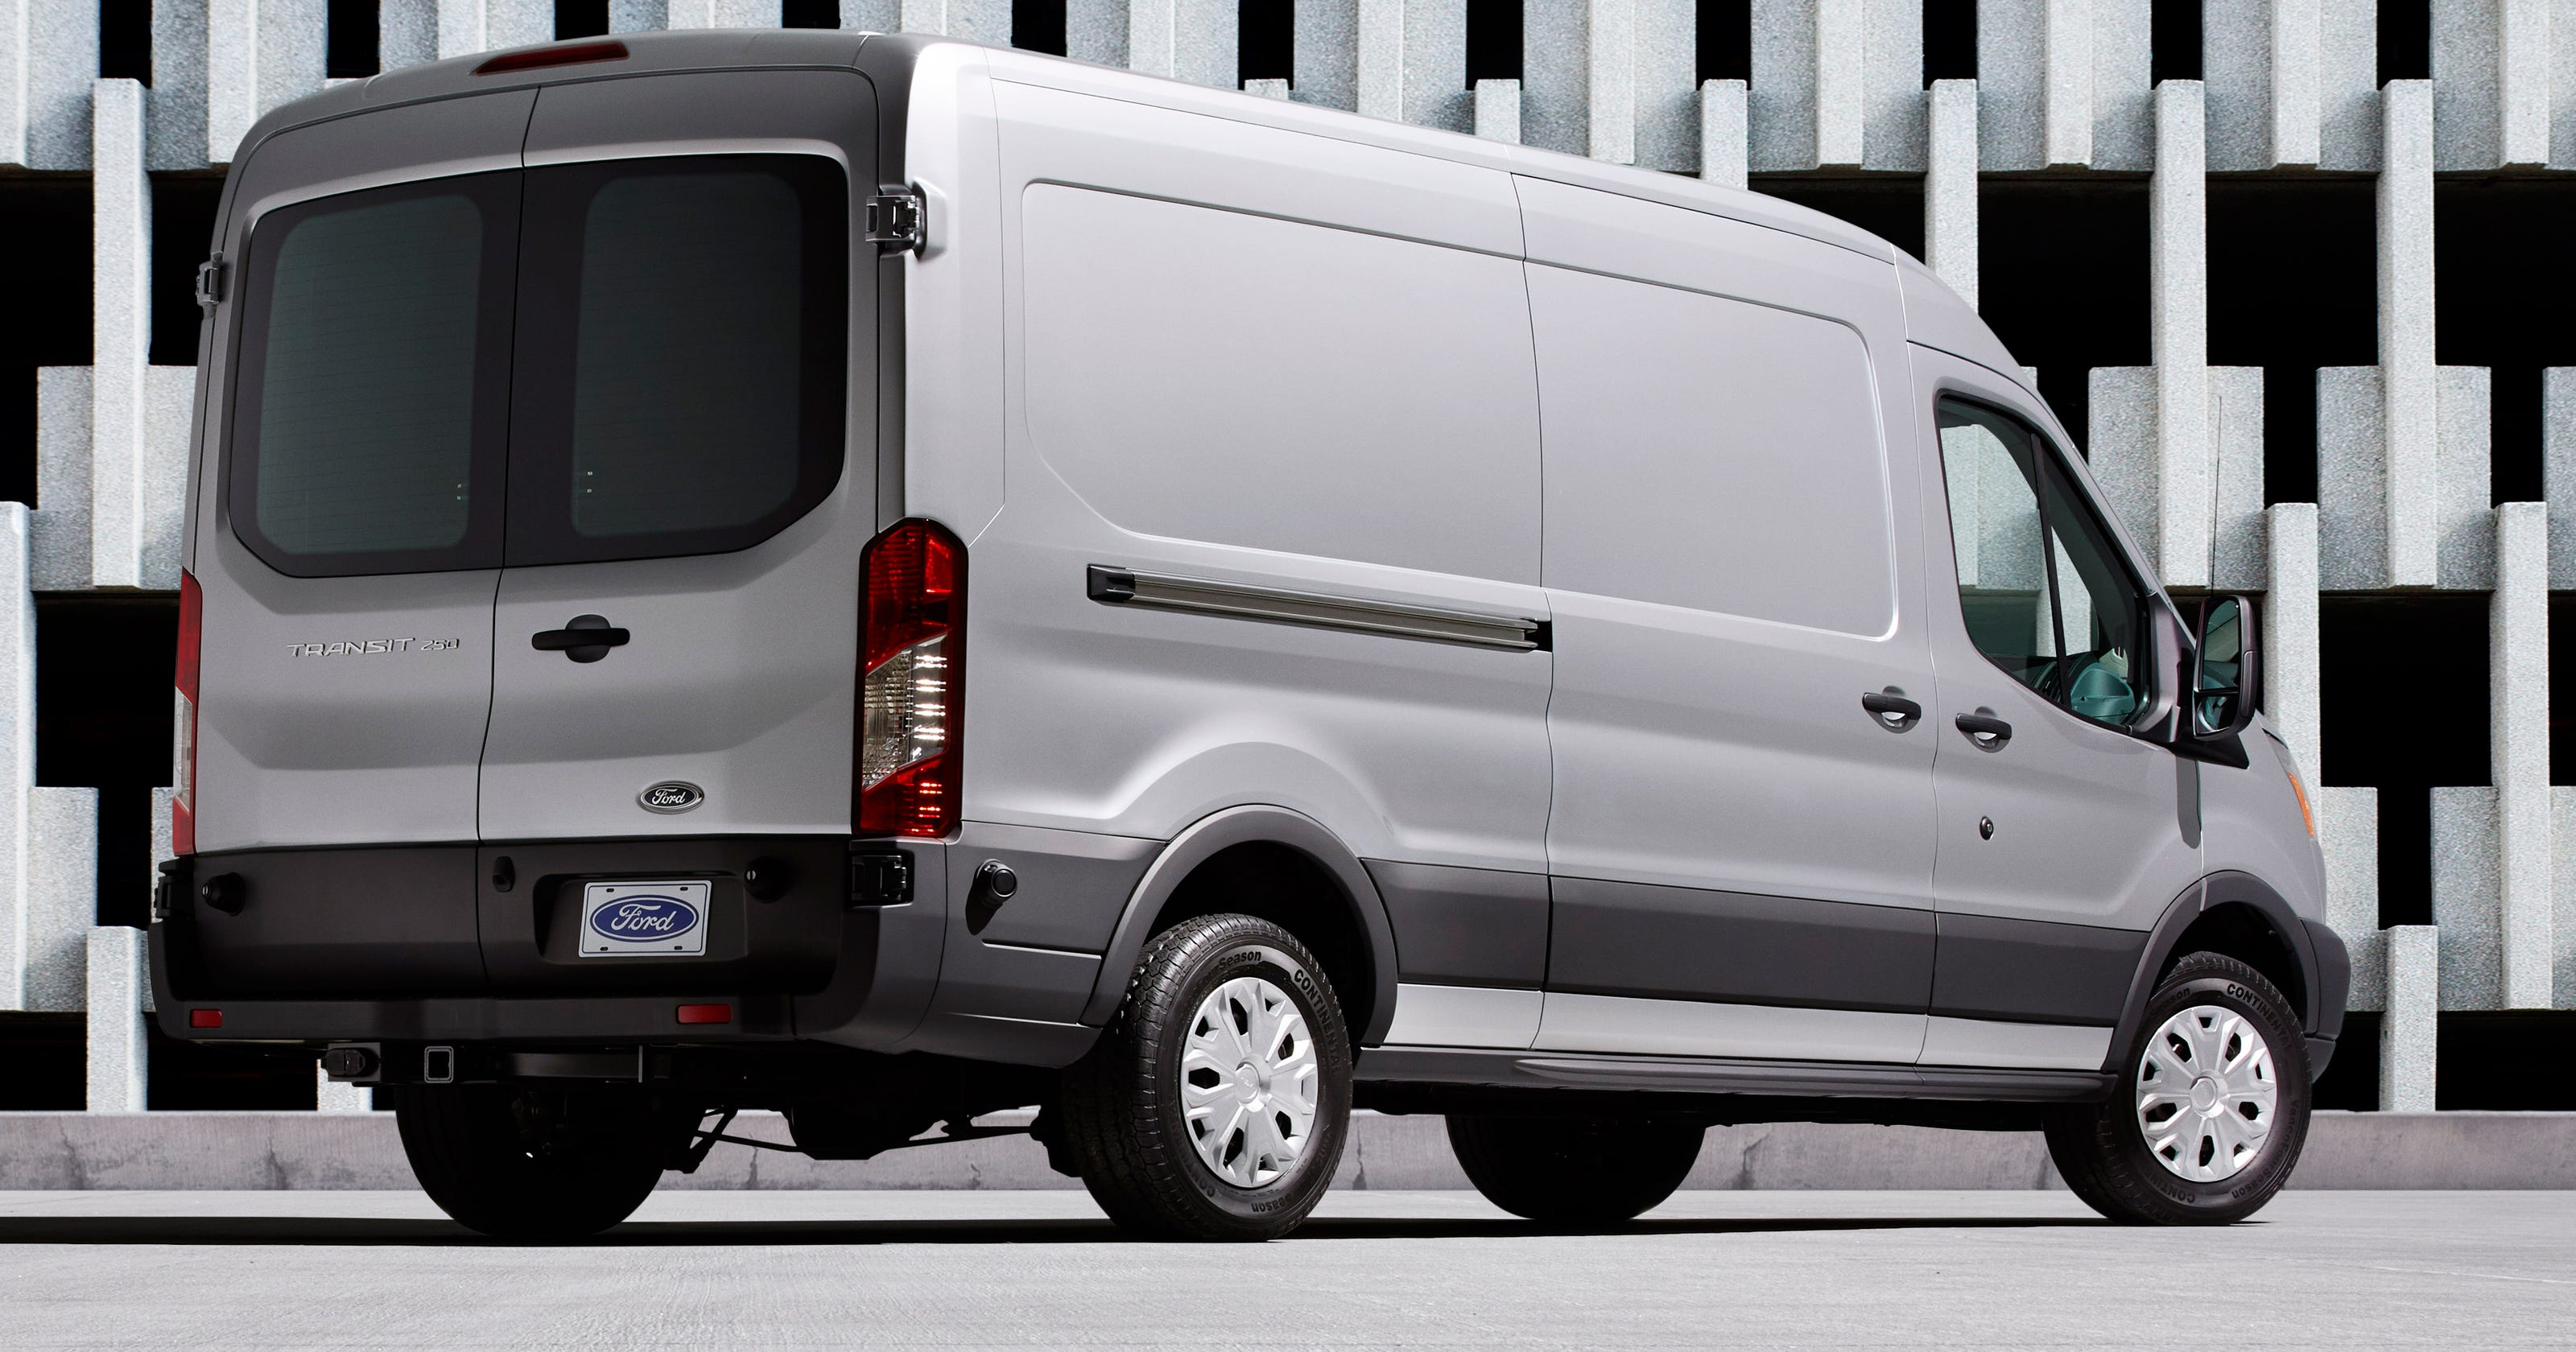 Ford expands safety recall to nearly 100,000 Transit vans in US